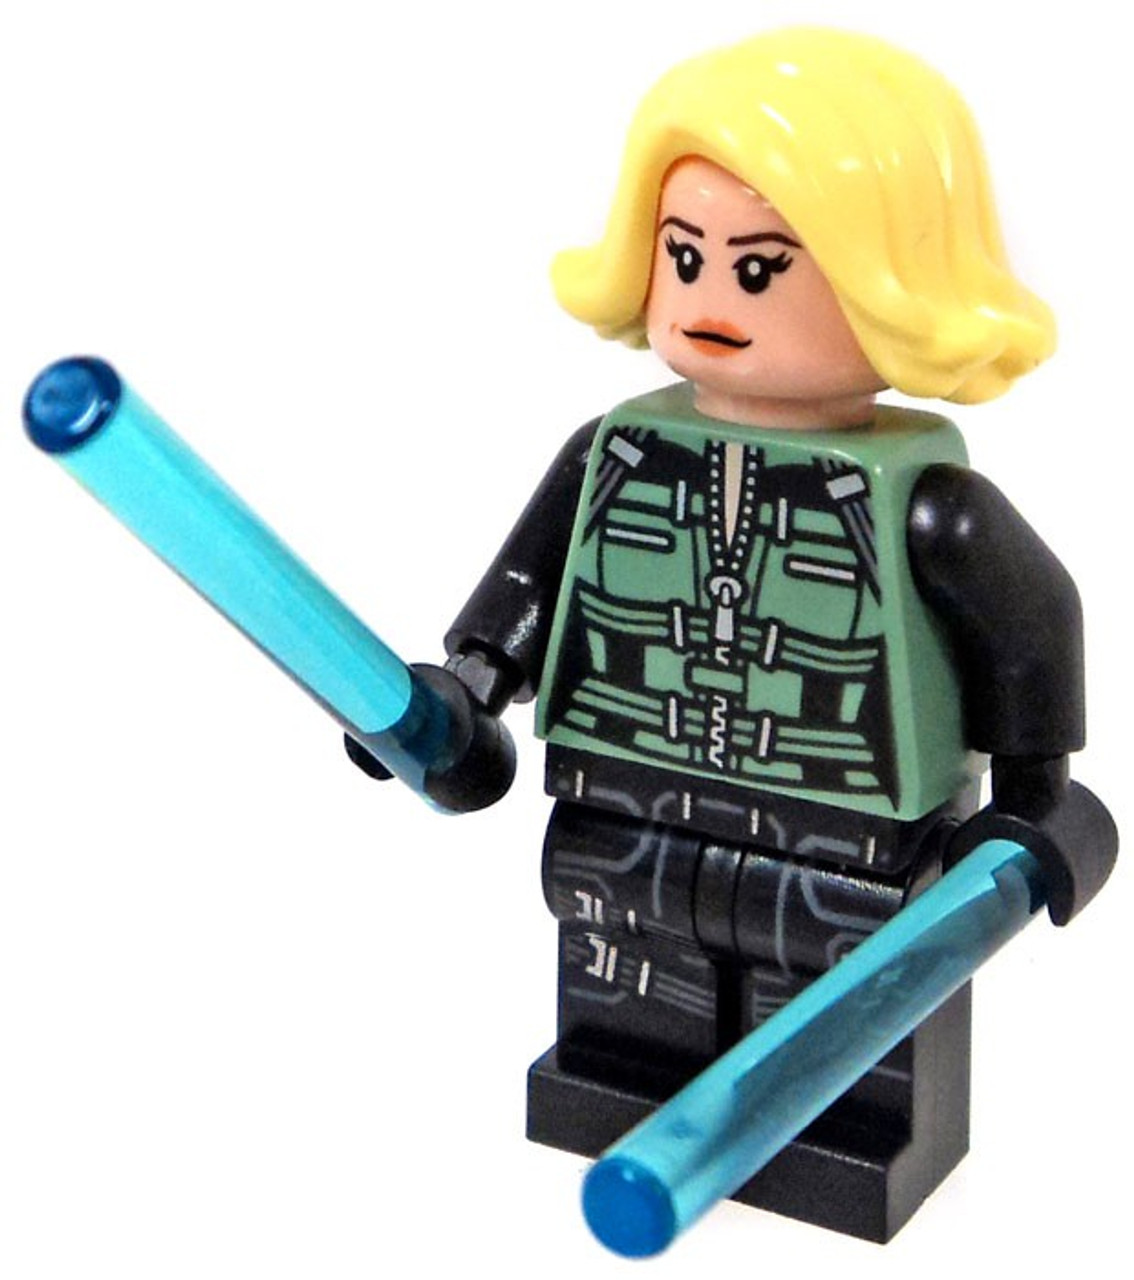 LEGO Marvel Avengers Infinity War Black Widow Minifigure ...